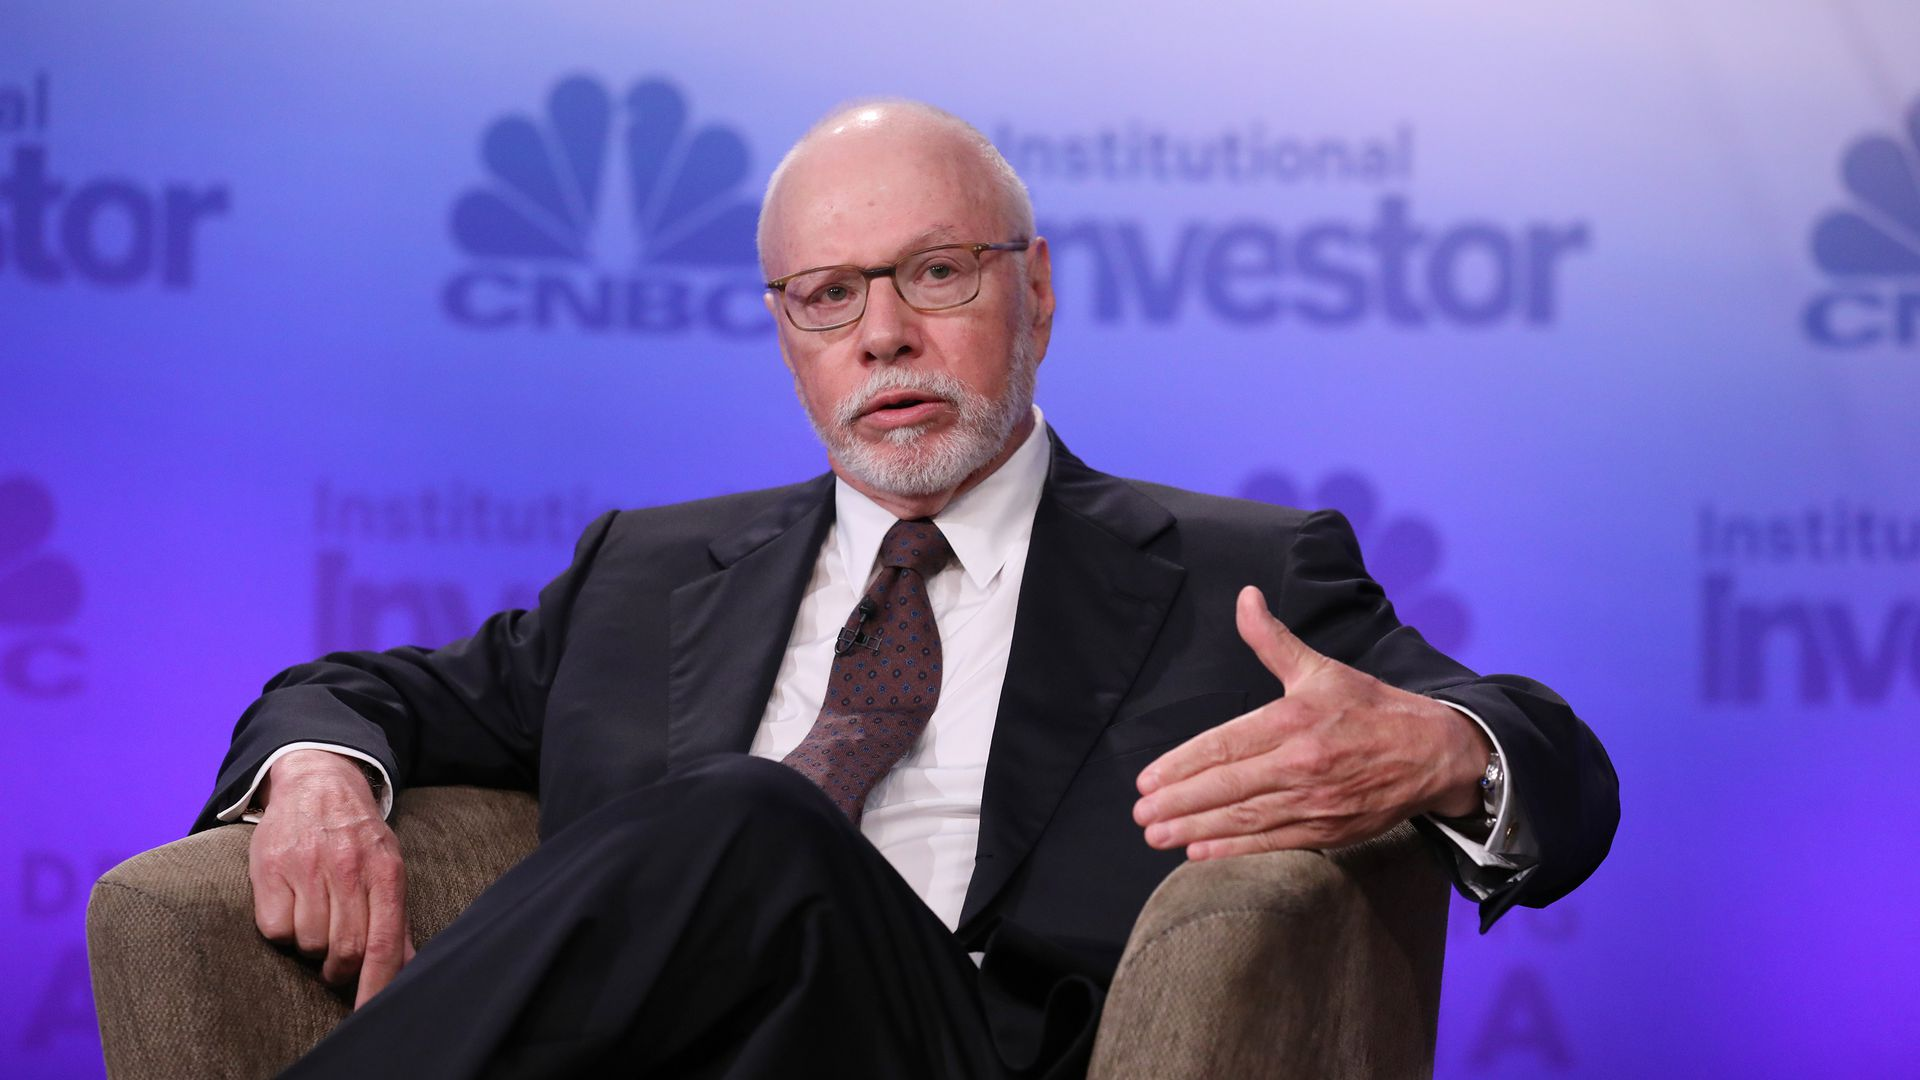 Hedge fund manager Paul Singer speaks at a CNBC event in 2016.